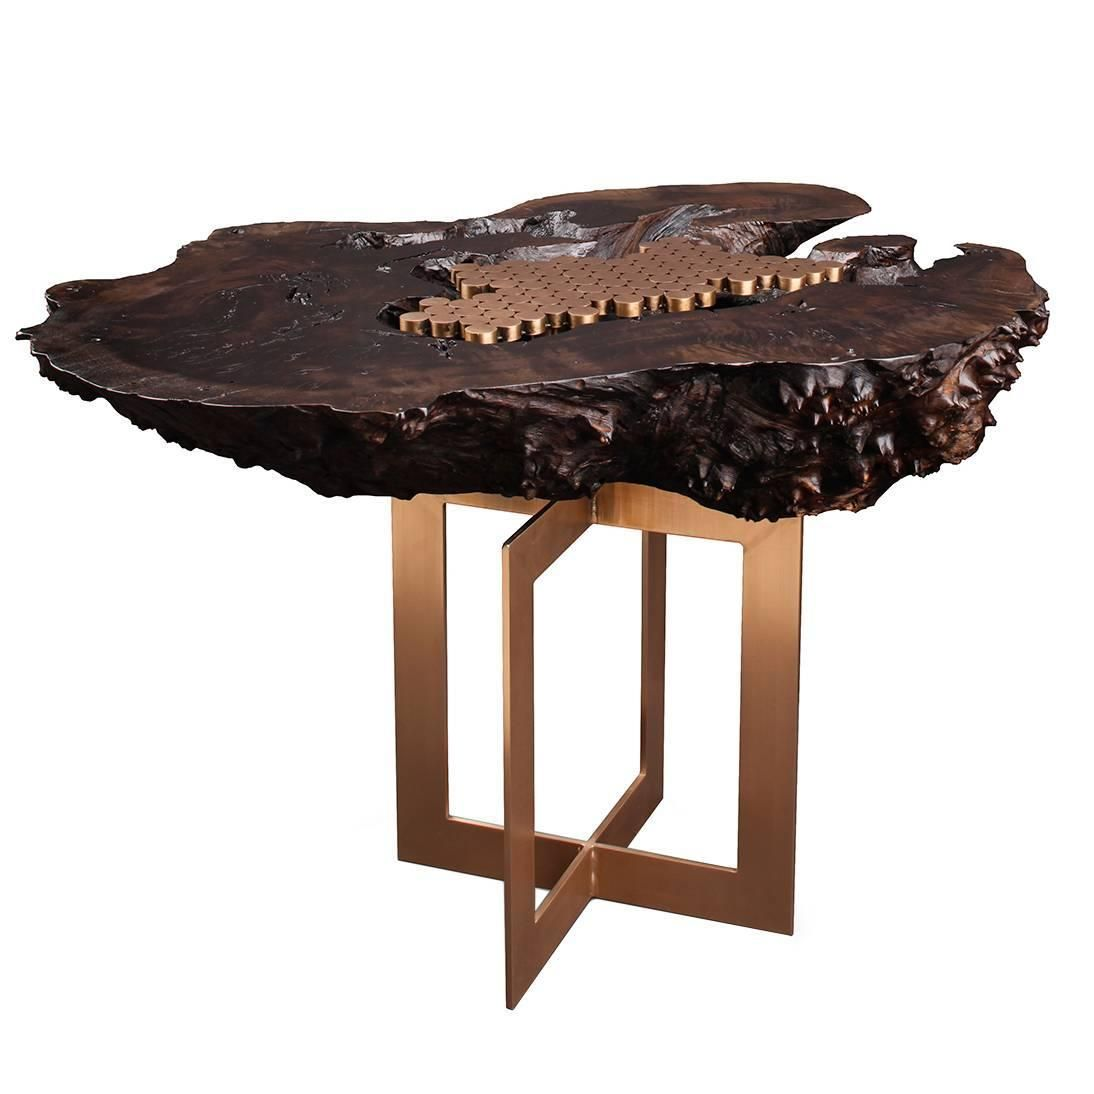 "Burl"" Side Table in Bronze and Smoked Walnut by Studio Roeper"